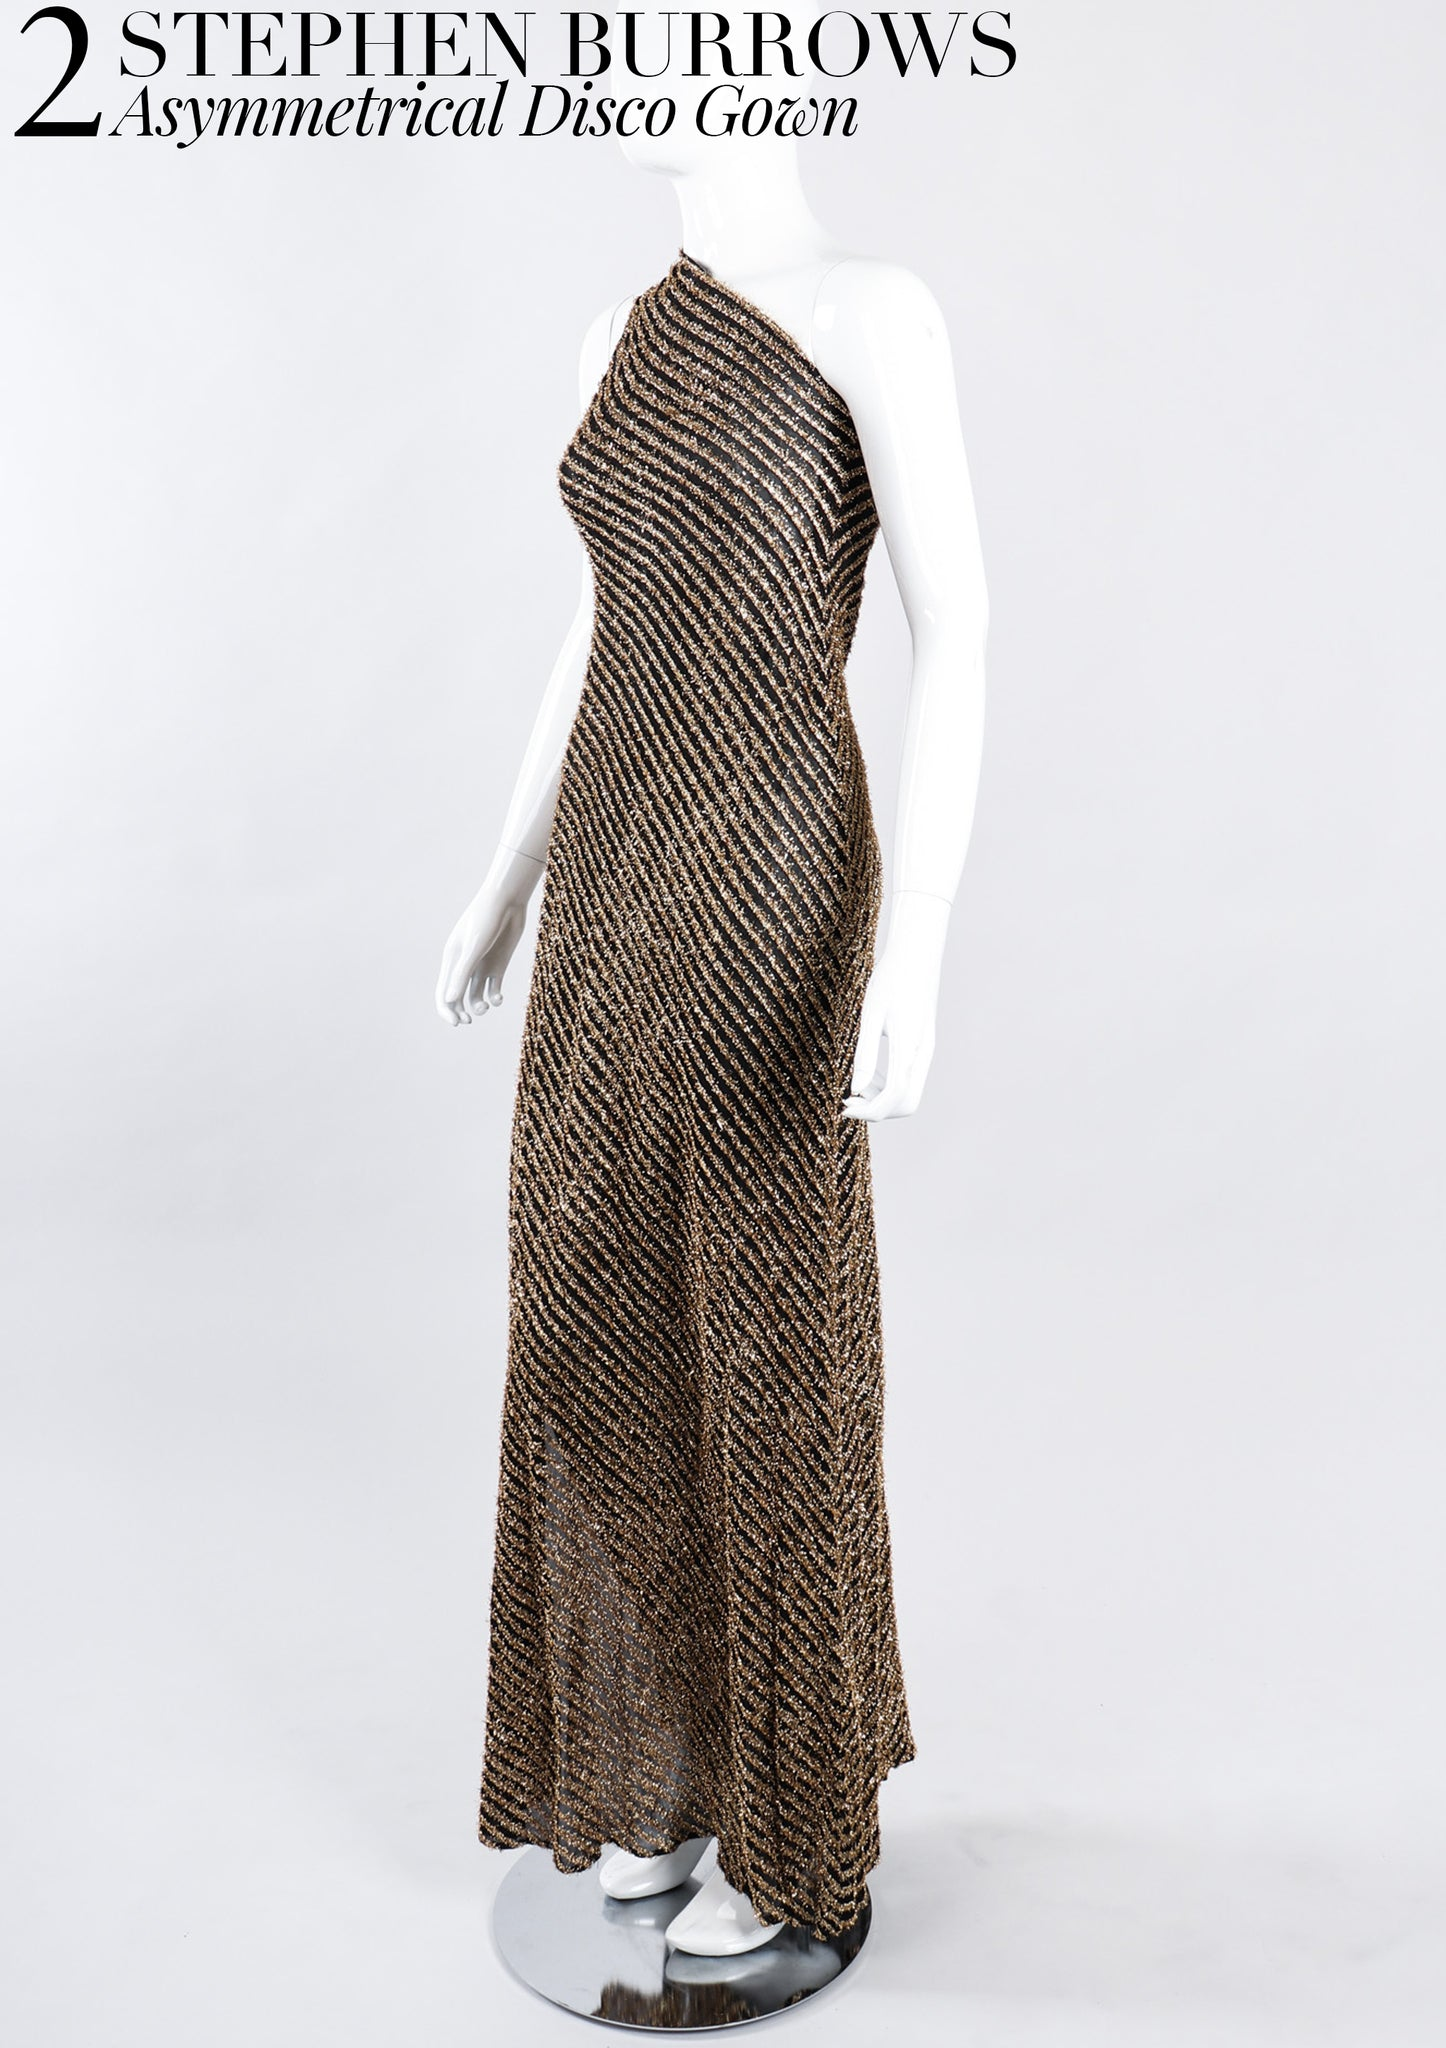 RECESS Los Angeles Vintage Dress Code Statement Piece Major Player Stephen Burrows Gold Asymmetrical Disco Gown